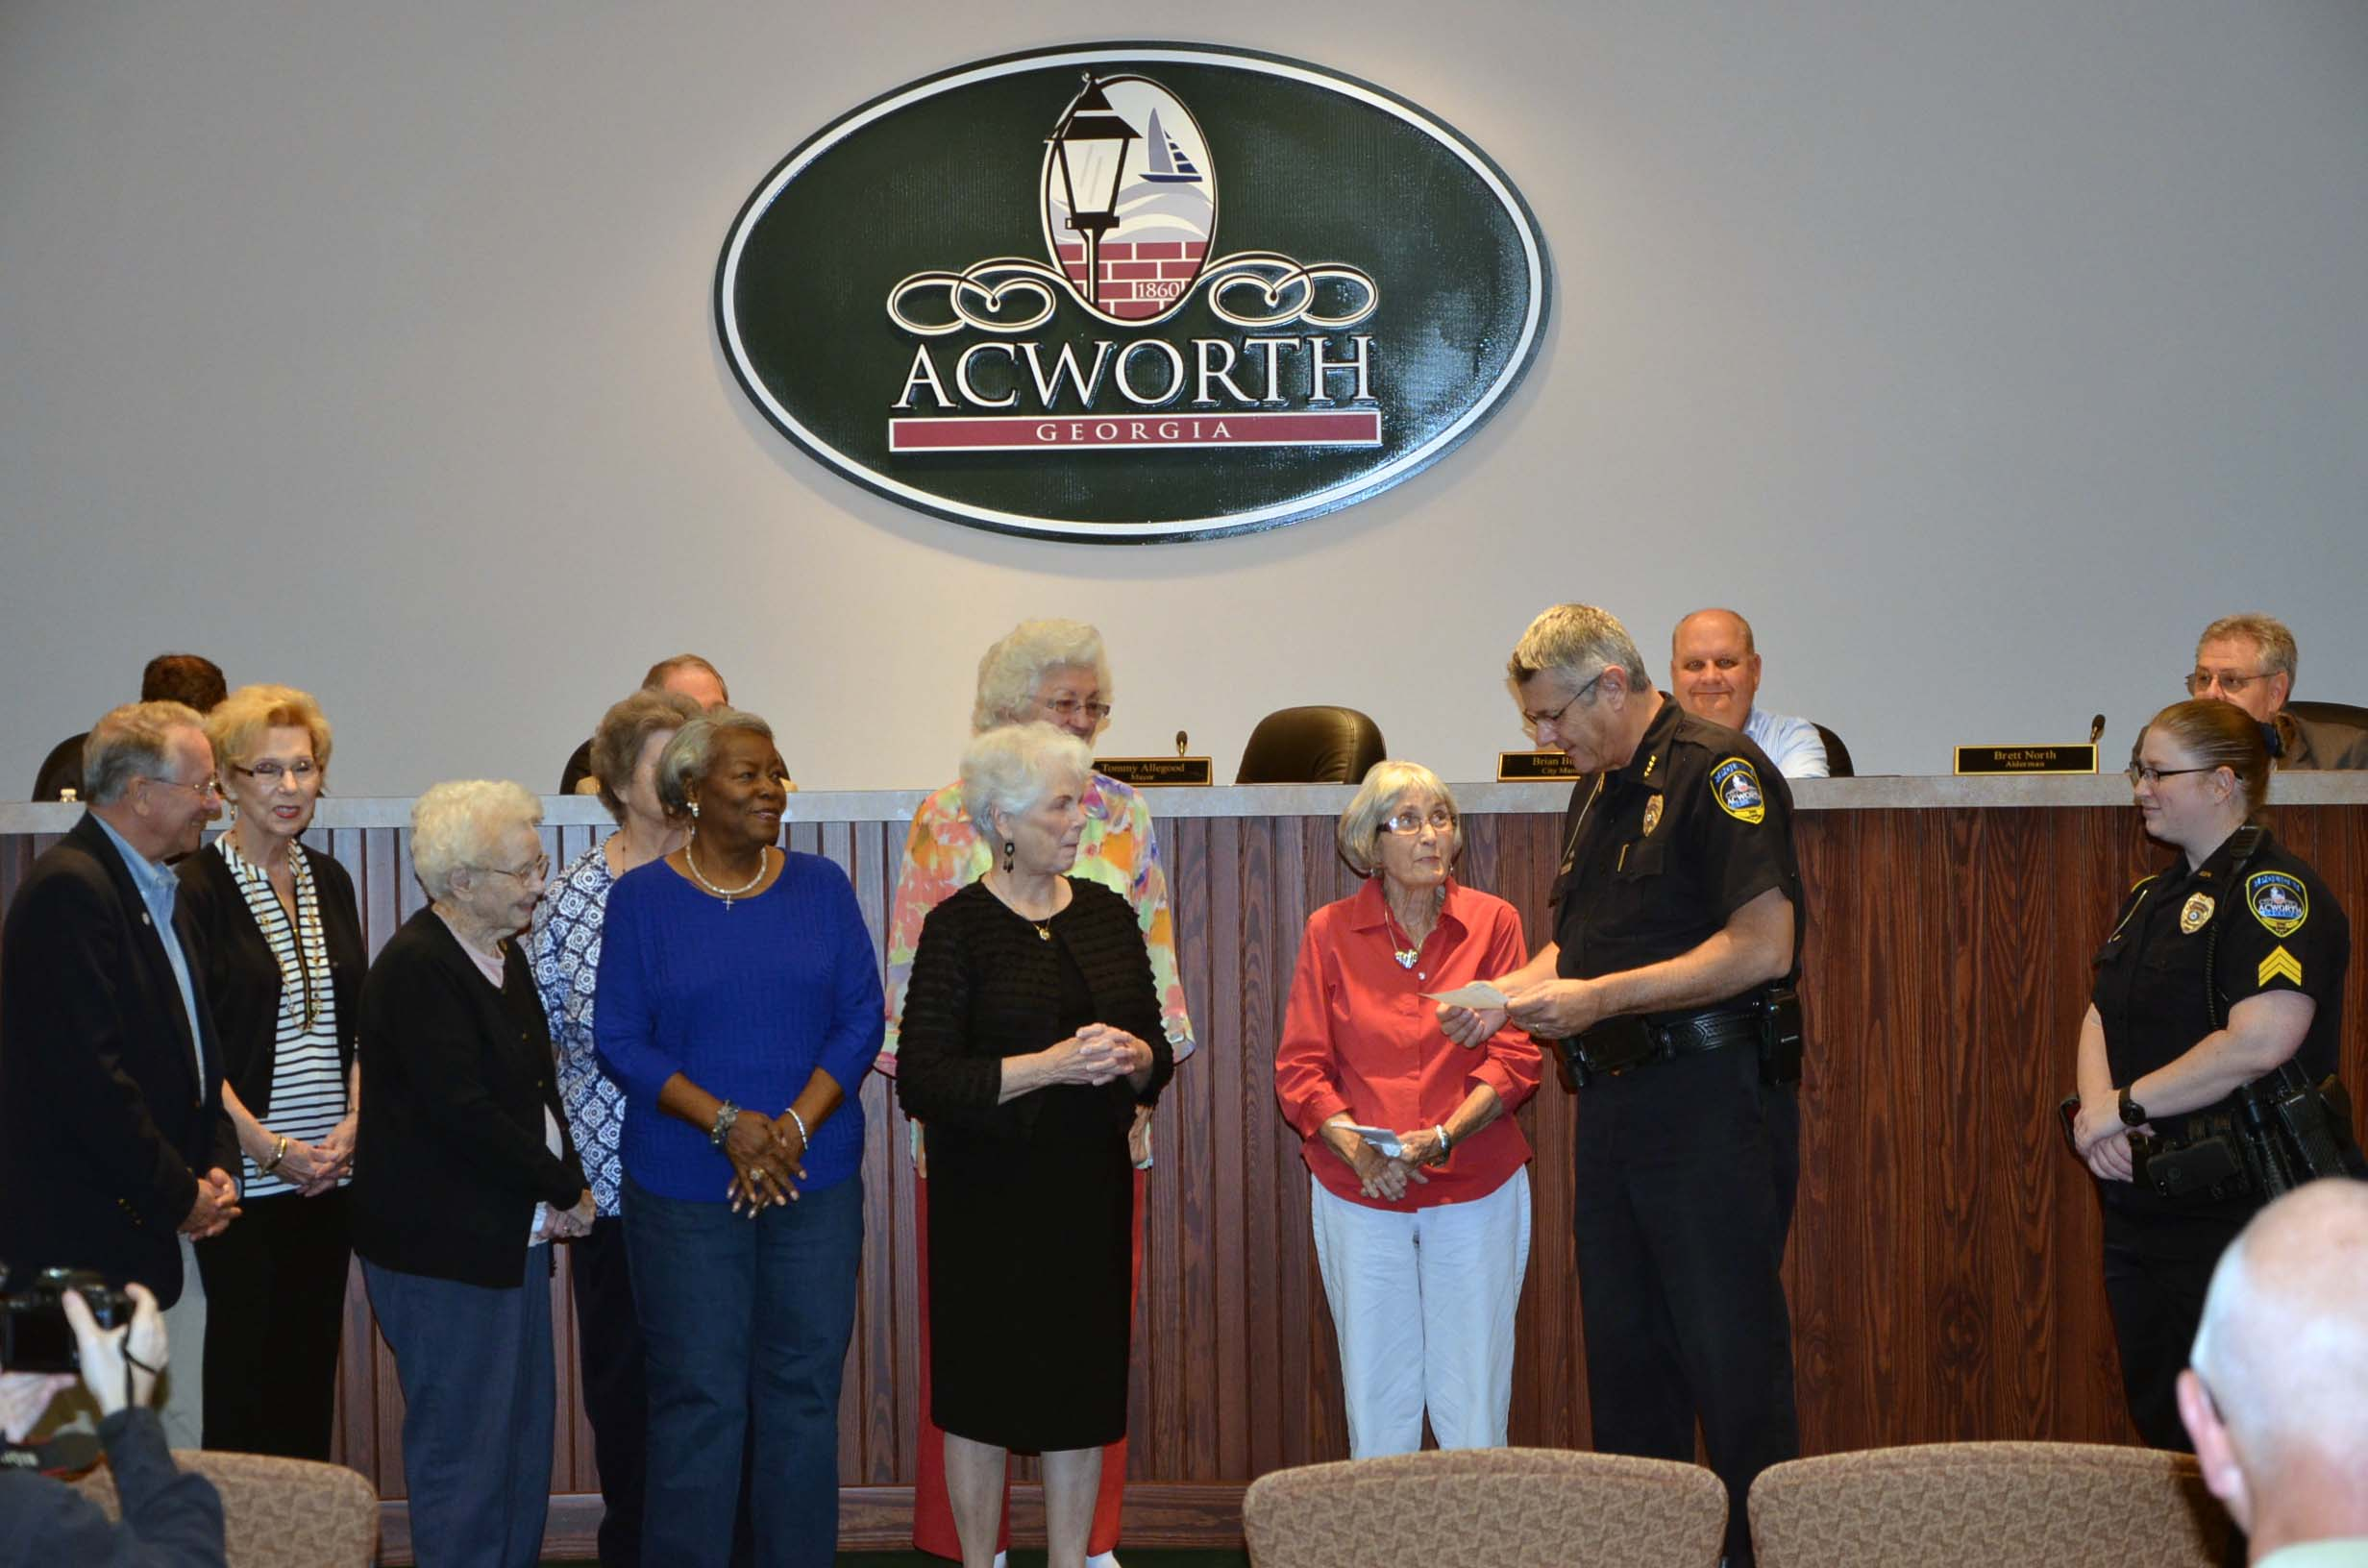 Carrie Dyer Women's Club of Acworth Presentation to the Police Department